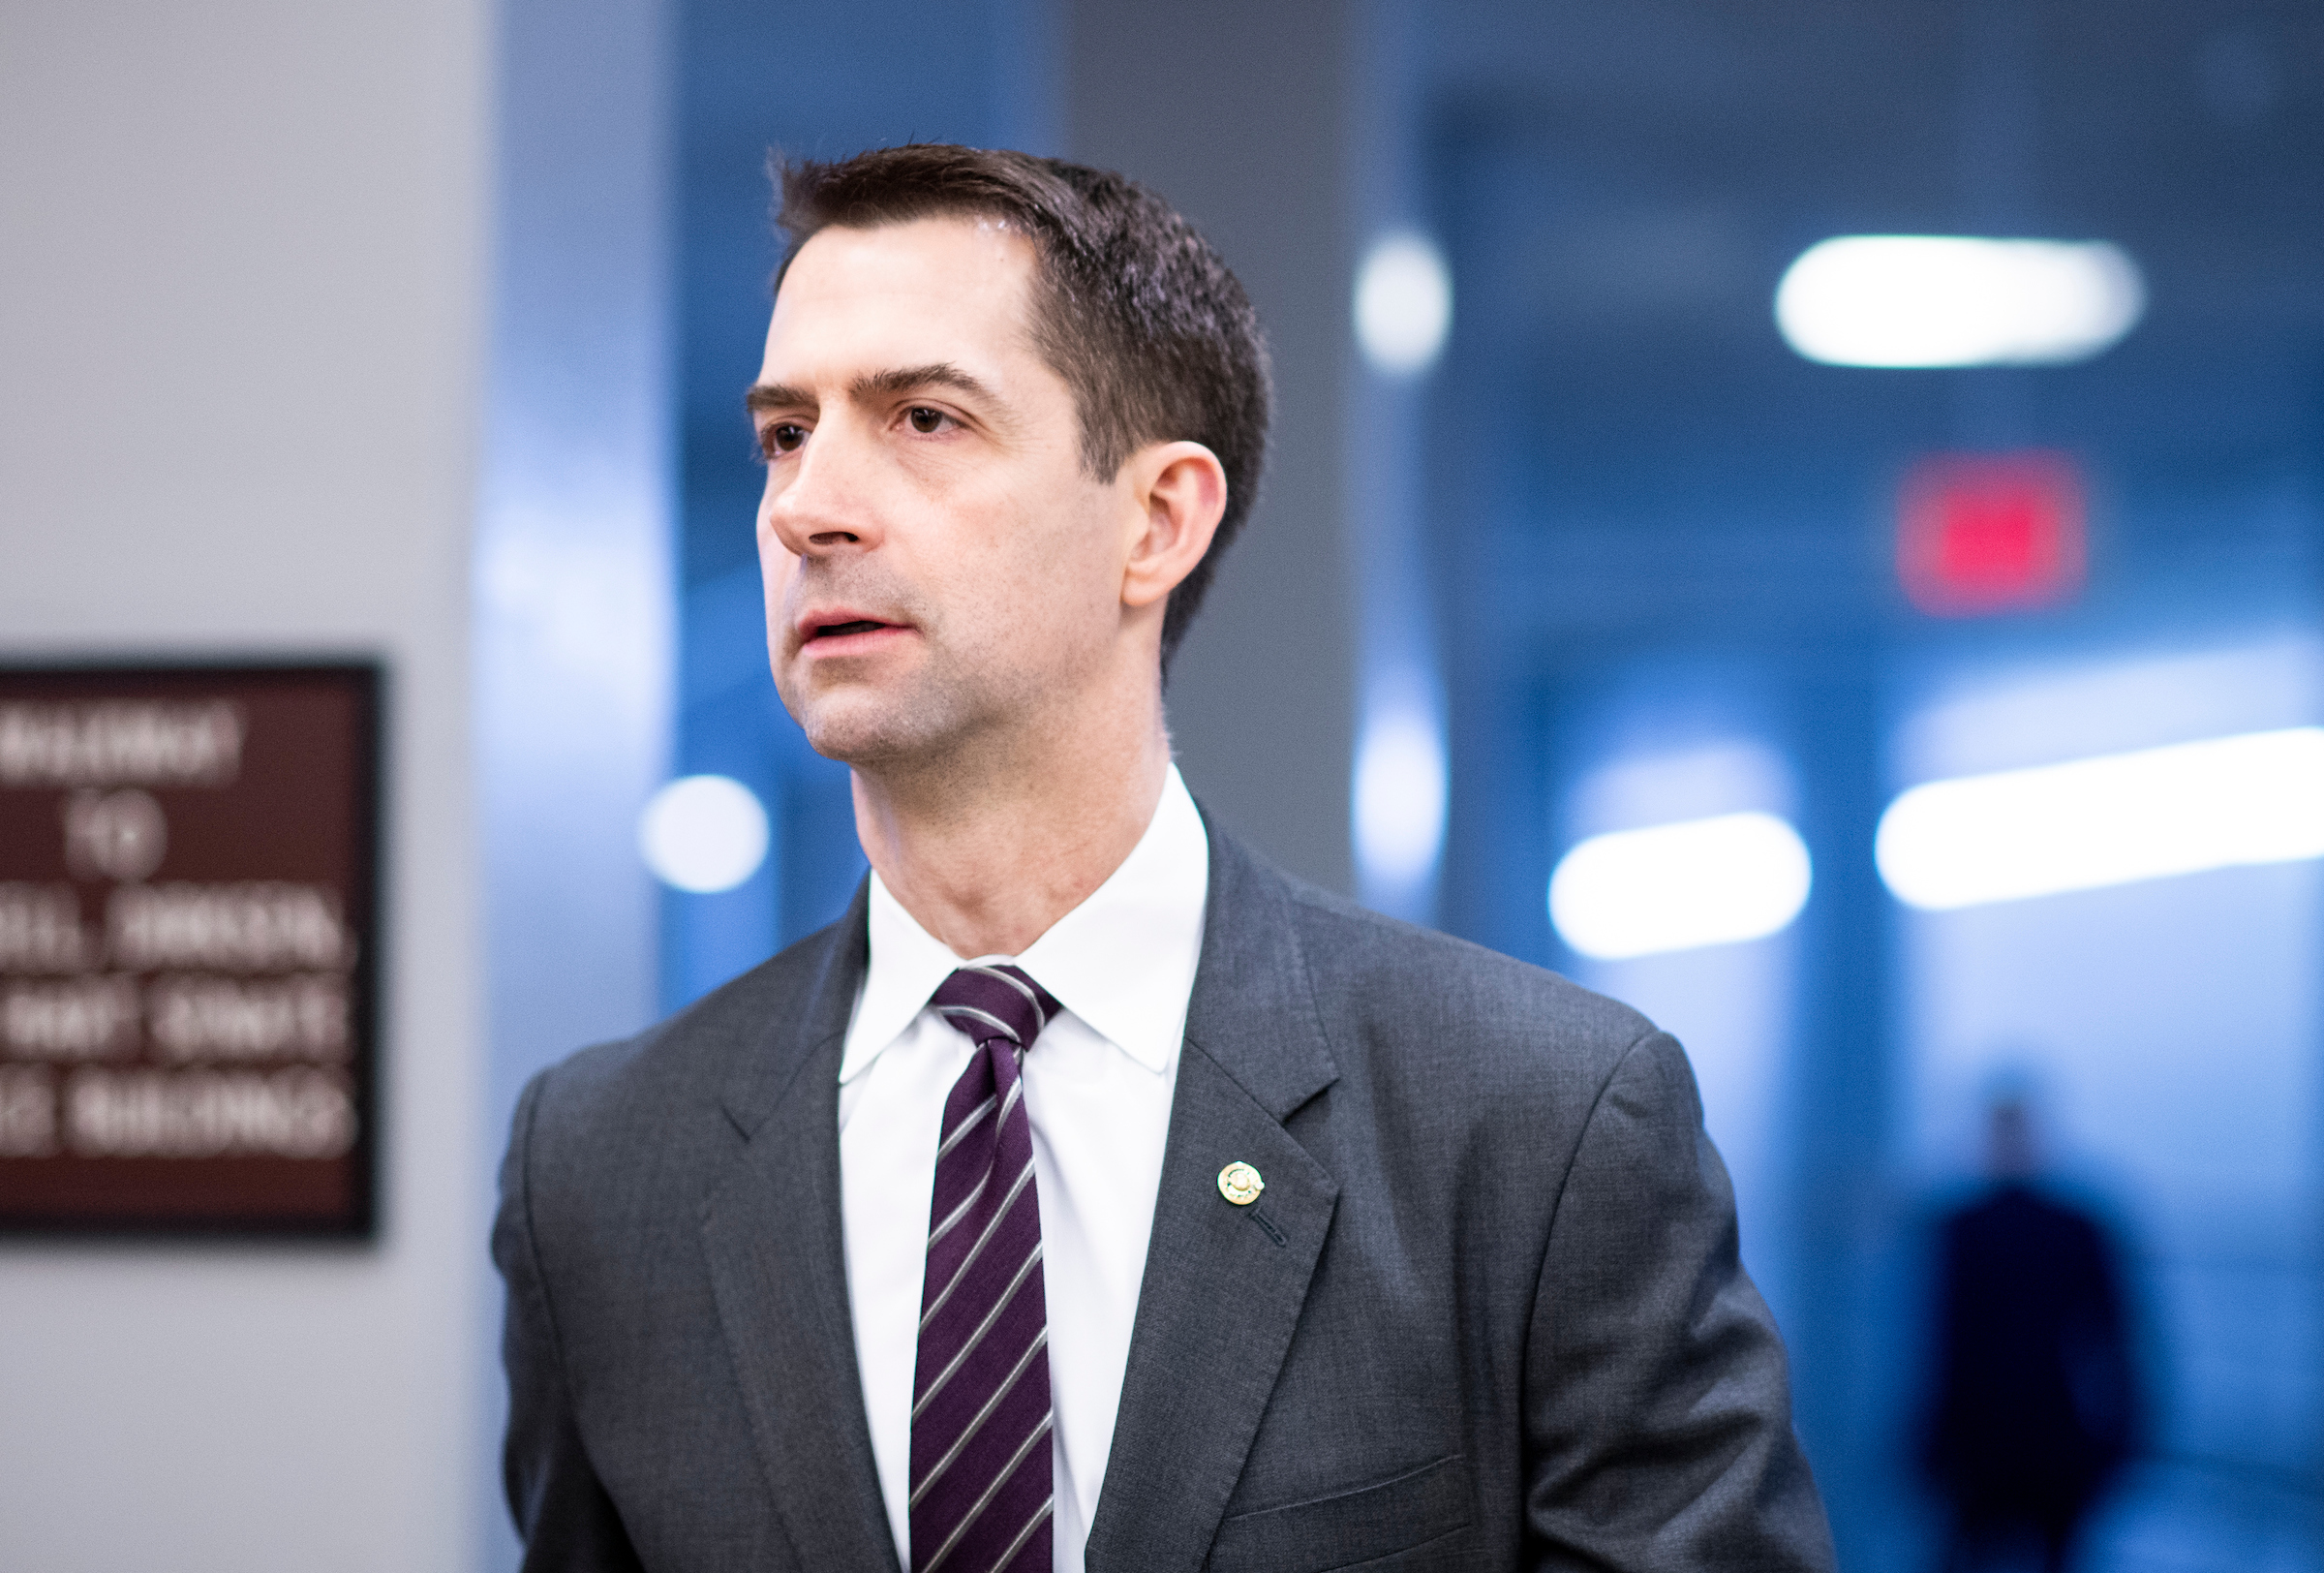 Tom Cotton recounts 'heartbreaking scenes' at the southern border